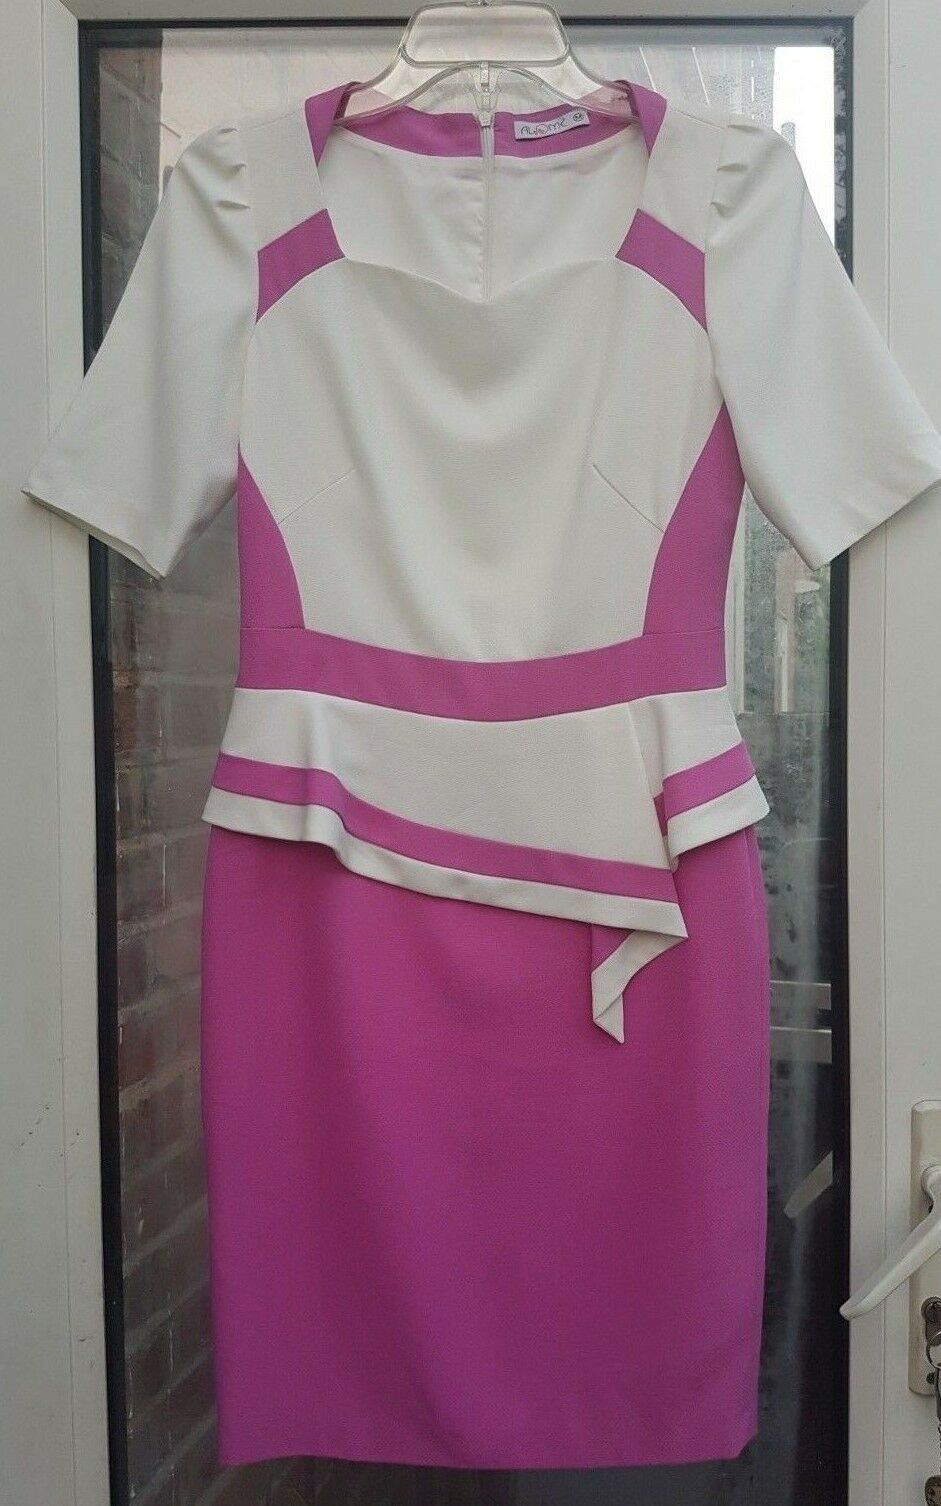 ALOME Ladie's White Pink Short Sleeve Lined Pencil Wedding Smart Dress Size M